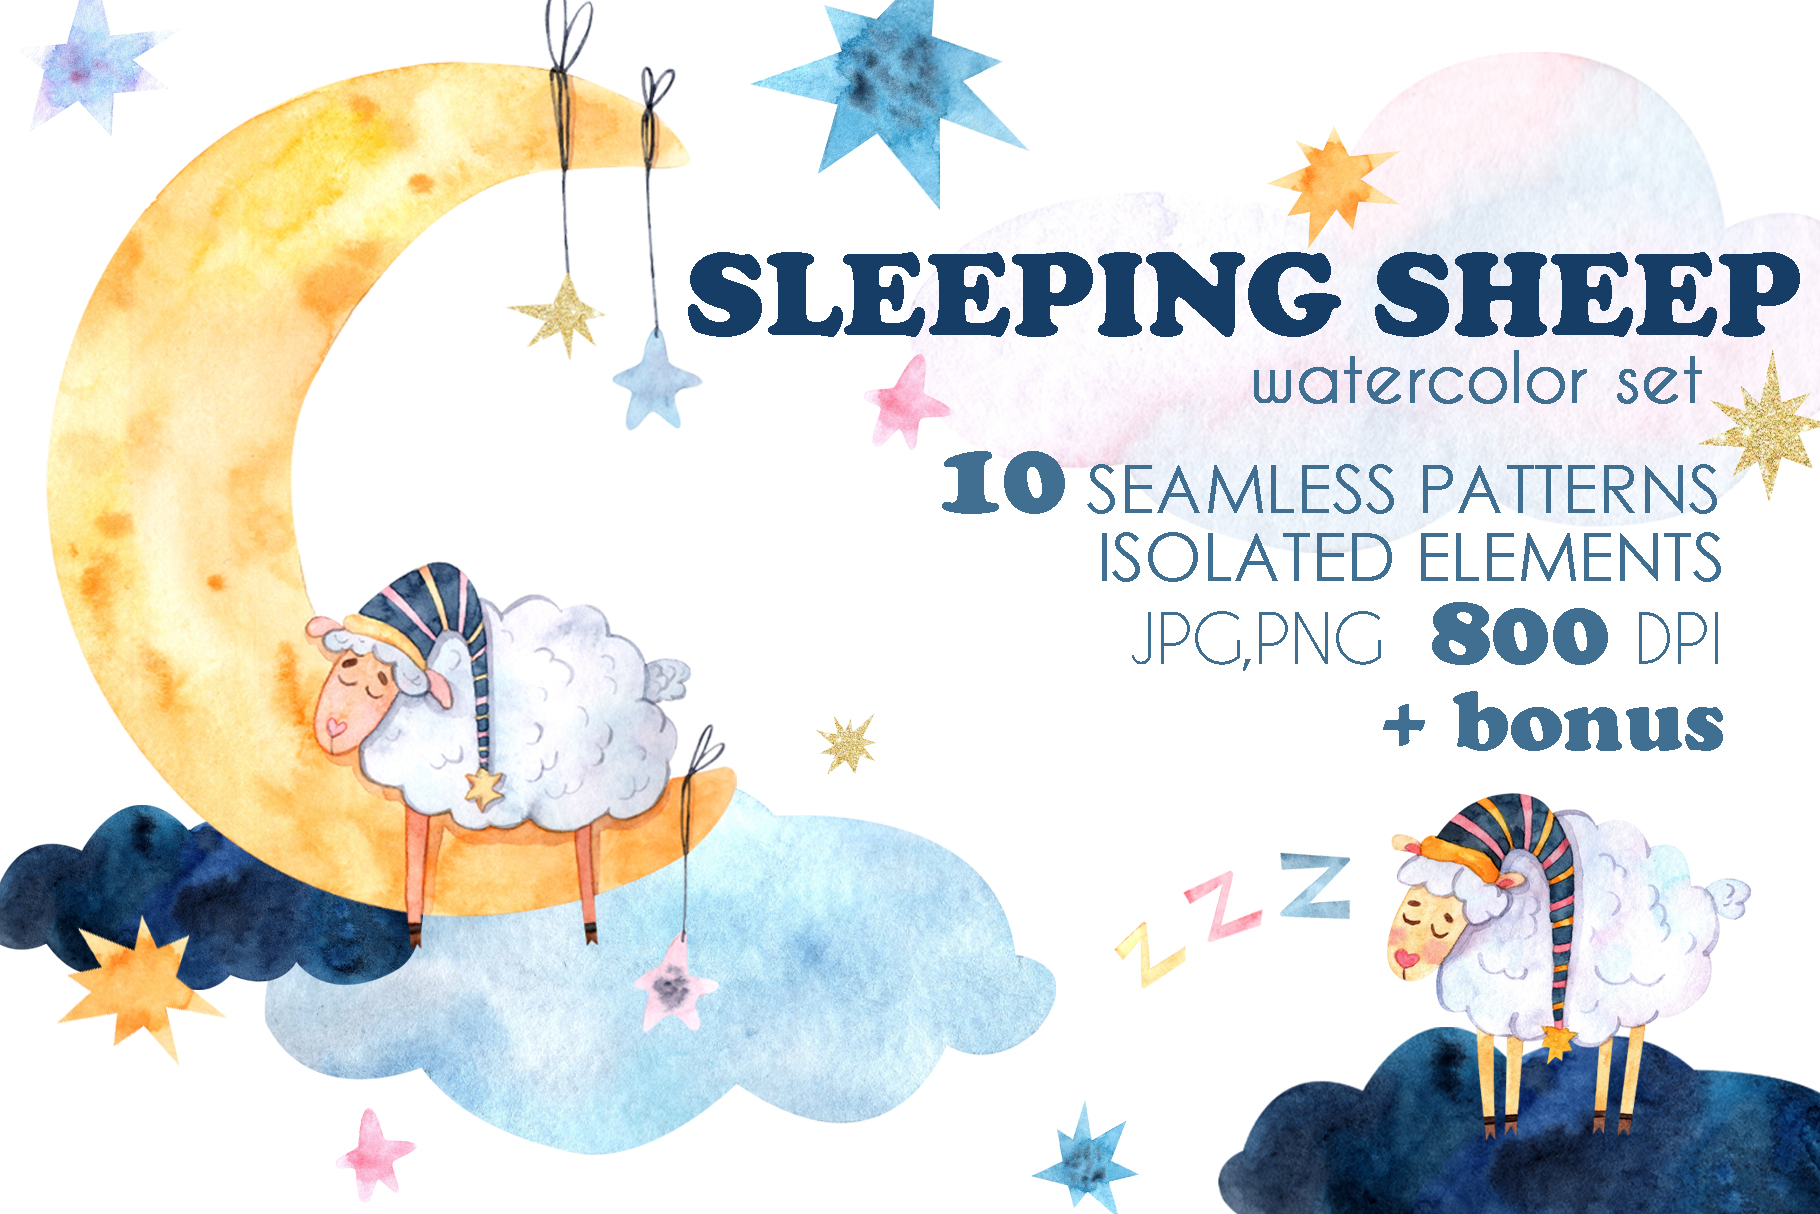 Download Free Sleeping Sheep Watercolor Set Graphic By Vasharisovasha for Cricut Explore, Silhouette and other cutting machines.